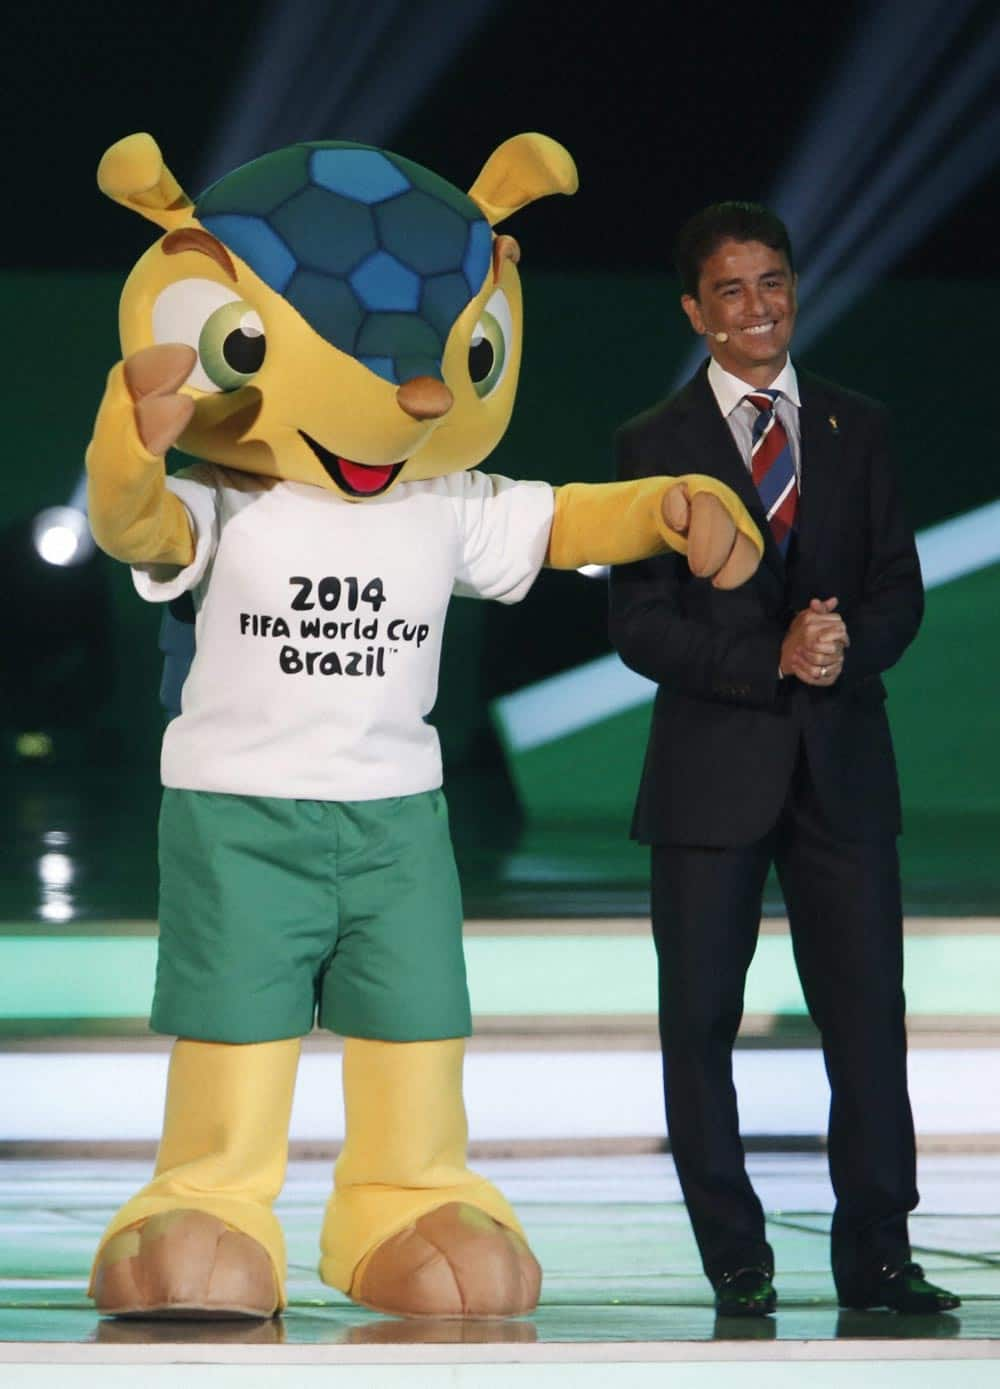 Former Brazilian soccer player Bebeto presents Mascot Fuleco during the draw ceremony for the 2014 soccer World Cup in Costa do Sauipe near Salvador, Brazil.